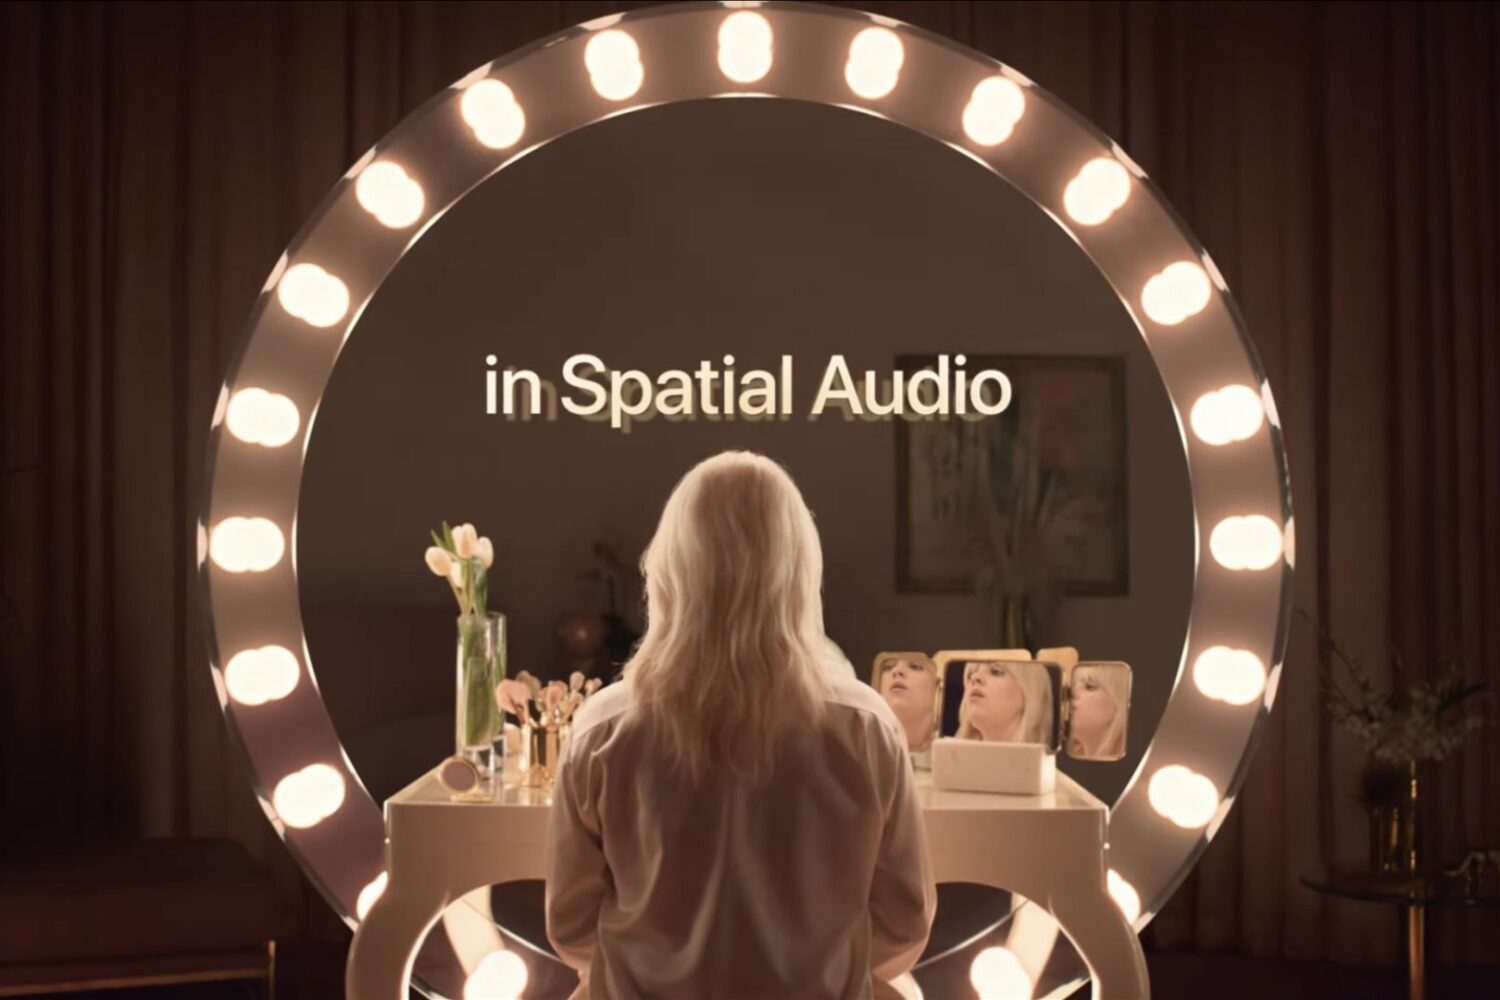 A still from Apple Music ad with Billie Eilish promoting spatial audio